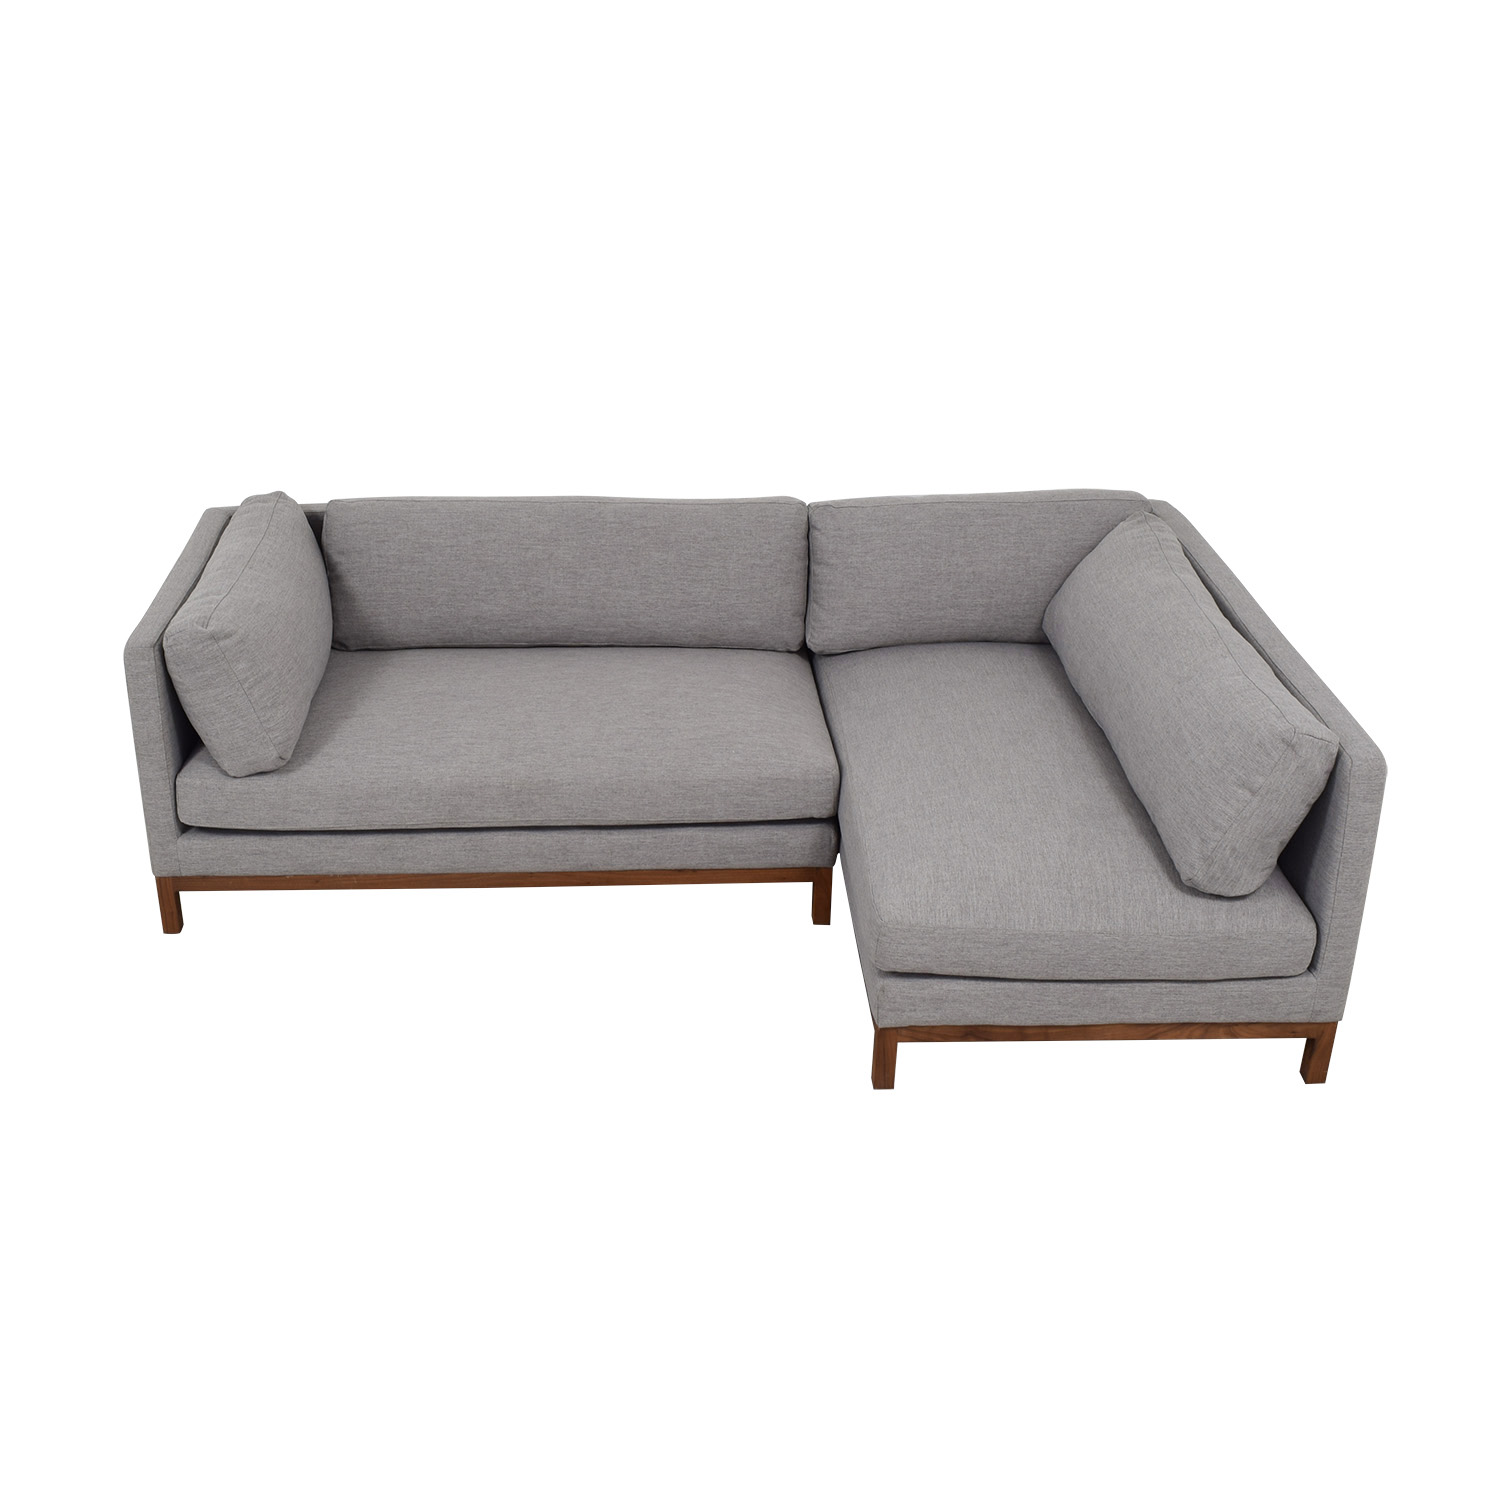 Miraculous 50 Off Grey Chaise Sectional With Wood Base Sofas Beatyapartments Chair Design Images Beatyapartmentscom